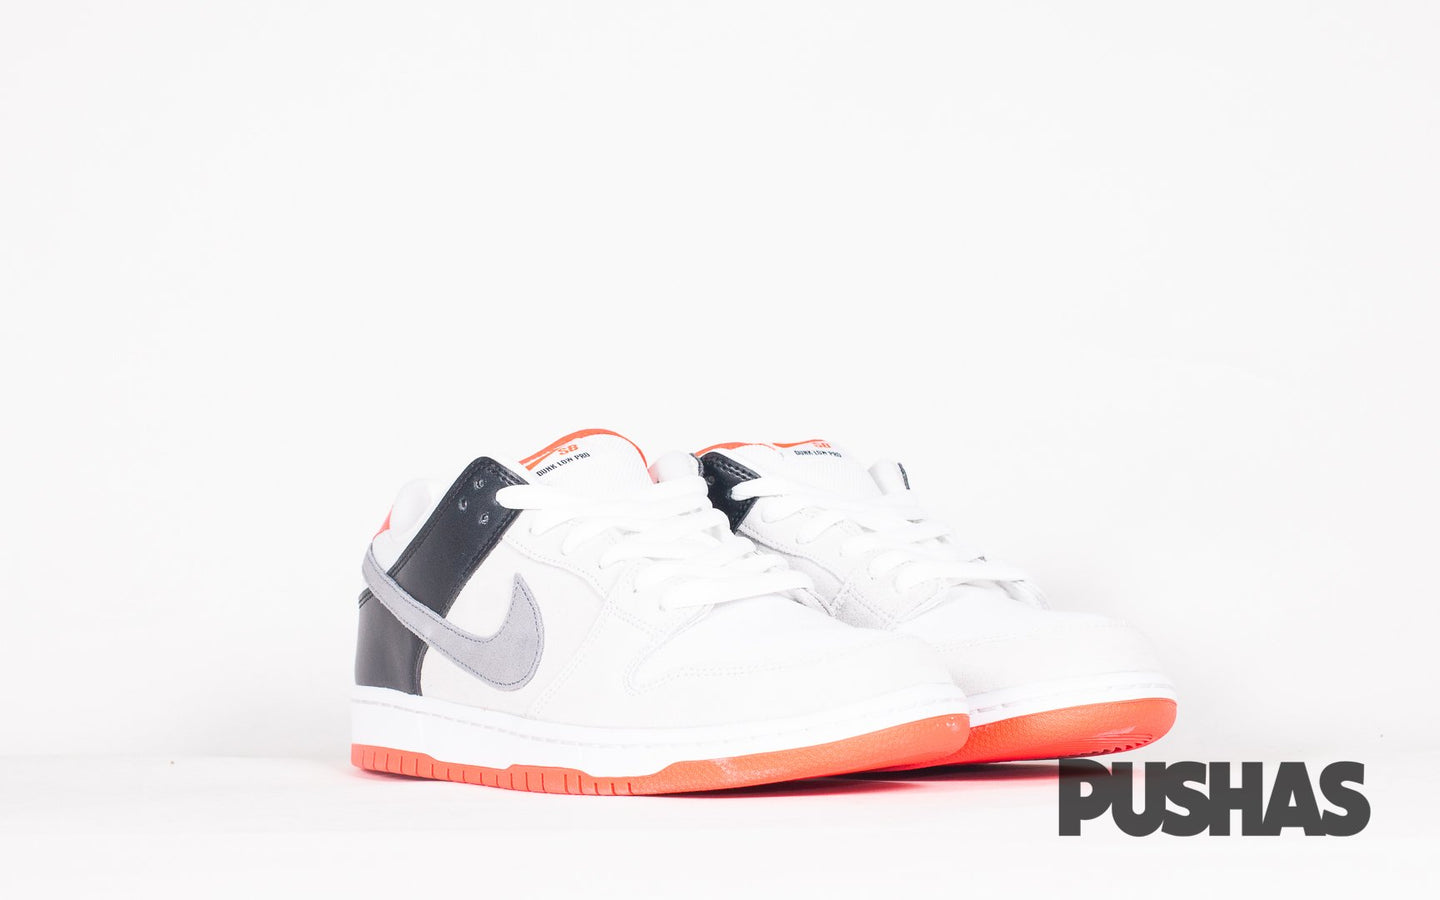 pushas-nike-sb-dunk-low-pro-infrared